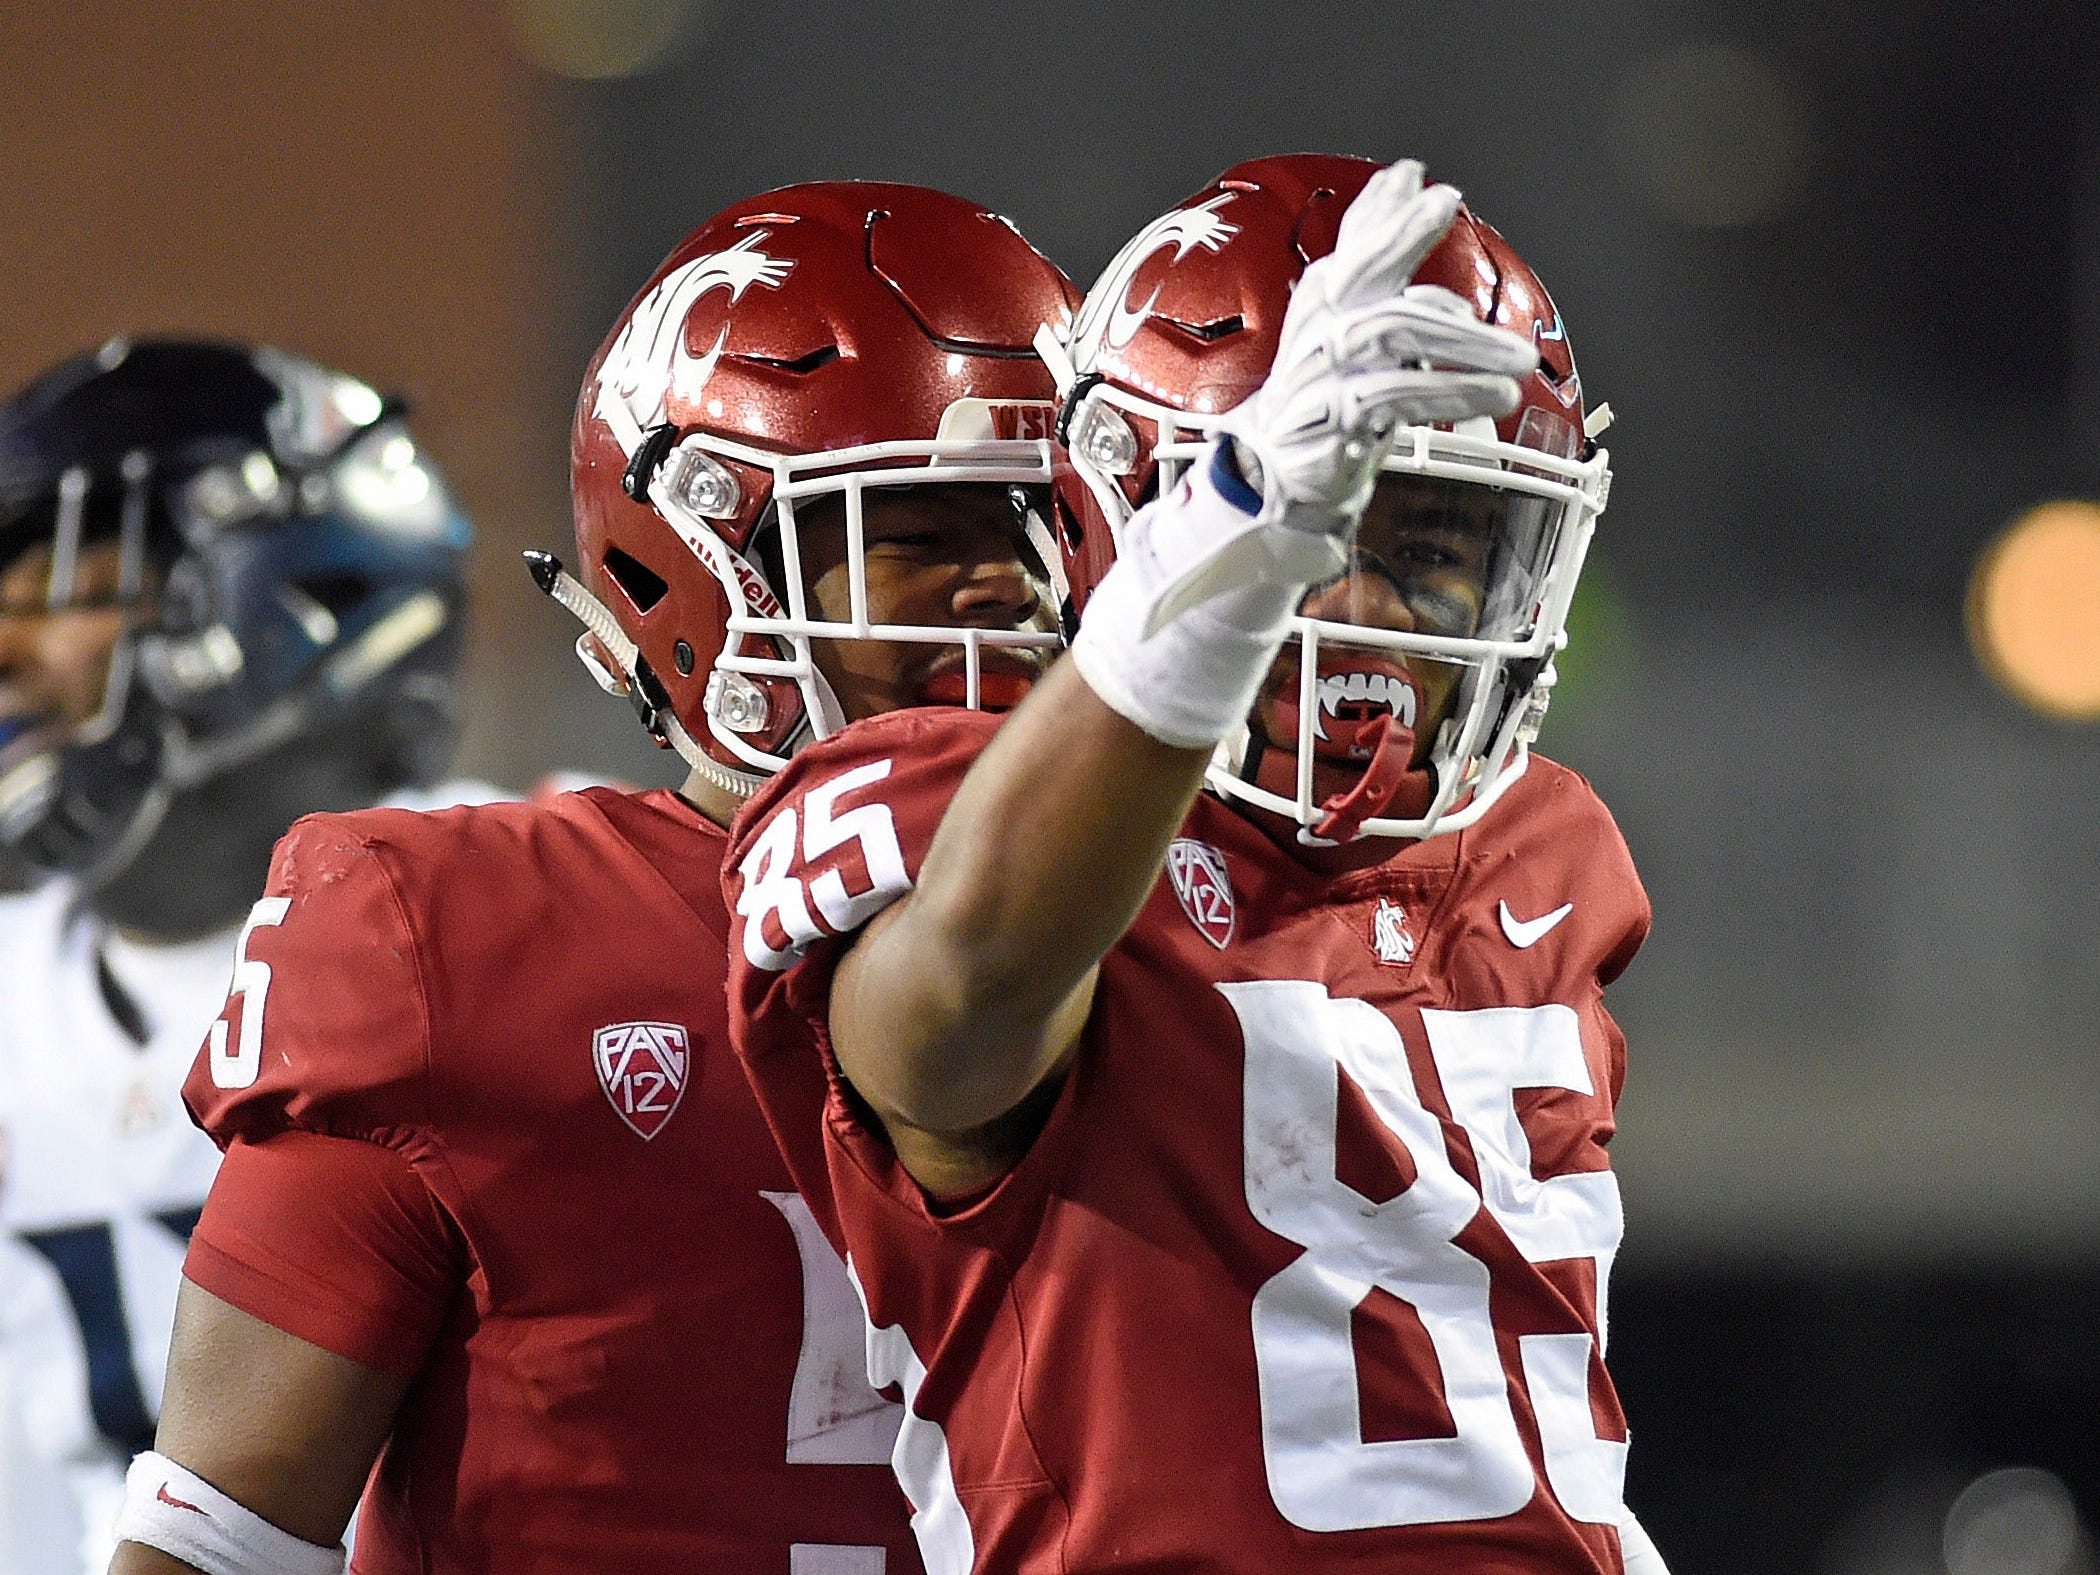 Nov 17, 2018; Pullman, WA, USA; Washington State Cougars wide receiver Calvin Jackson Jr. (85) celebrates a first down during a game against the Arizona Wildcats in the second half at Martin Stadium. Mandatory Credit: James Snook-USA TODAY Sports